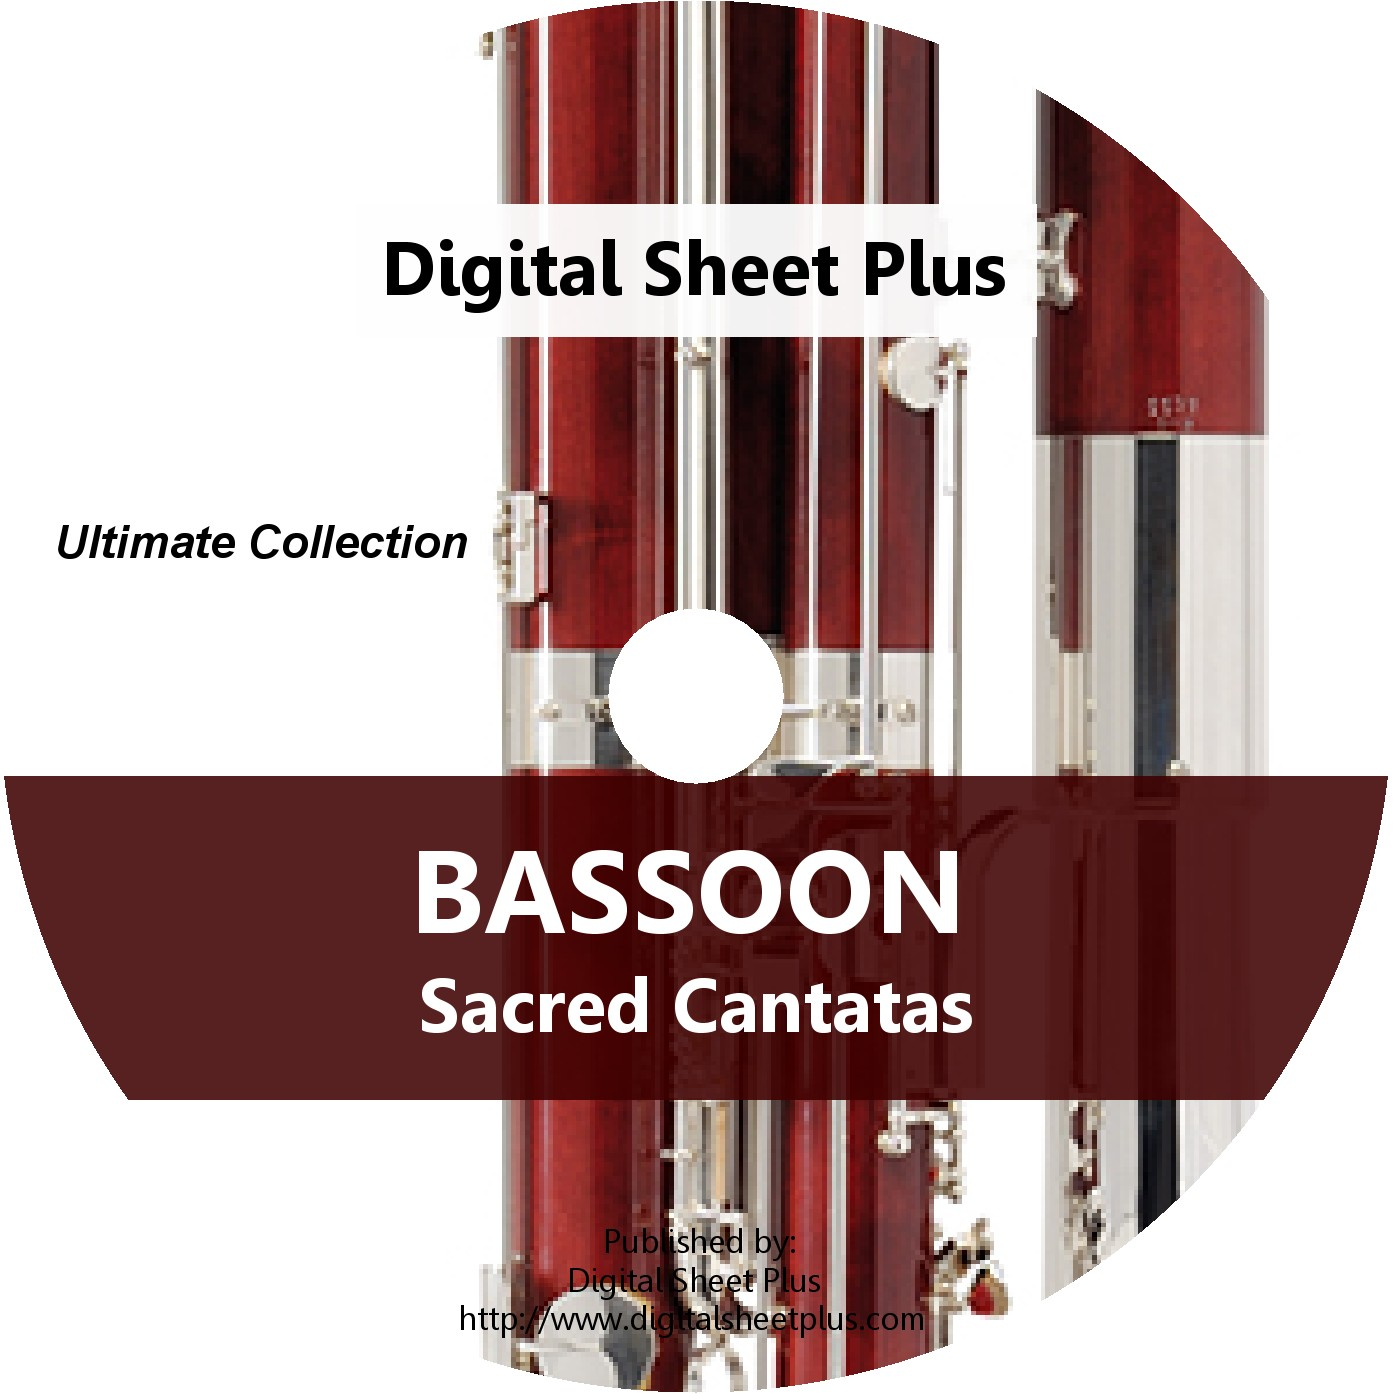 Bassoon Sacred Cantatas Sheet Music CD